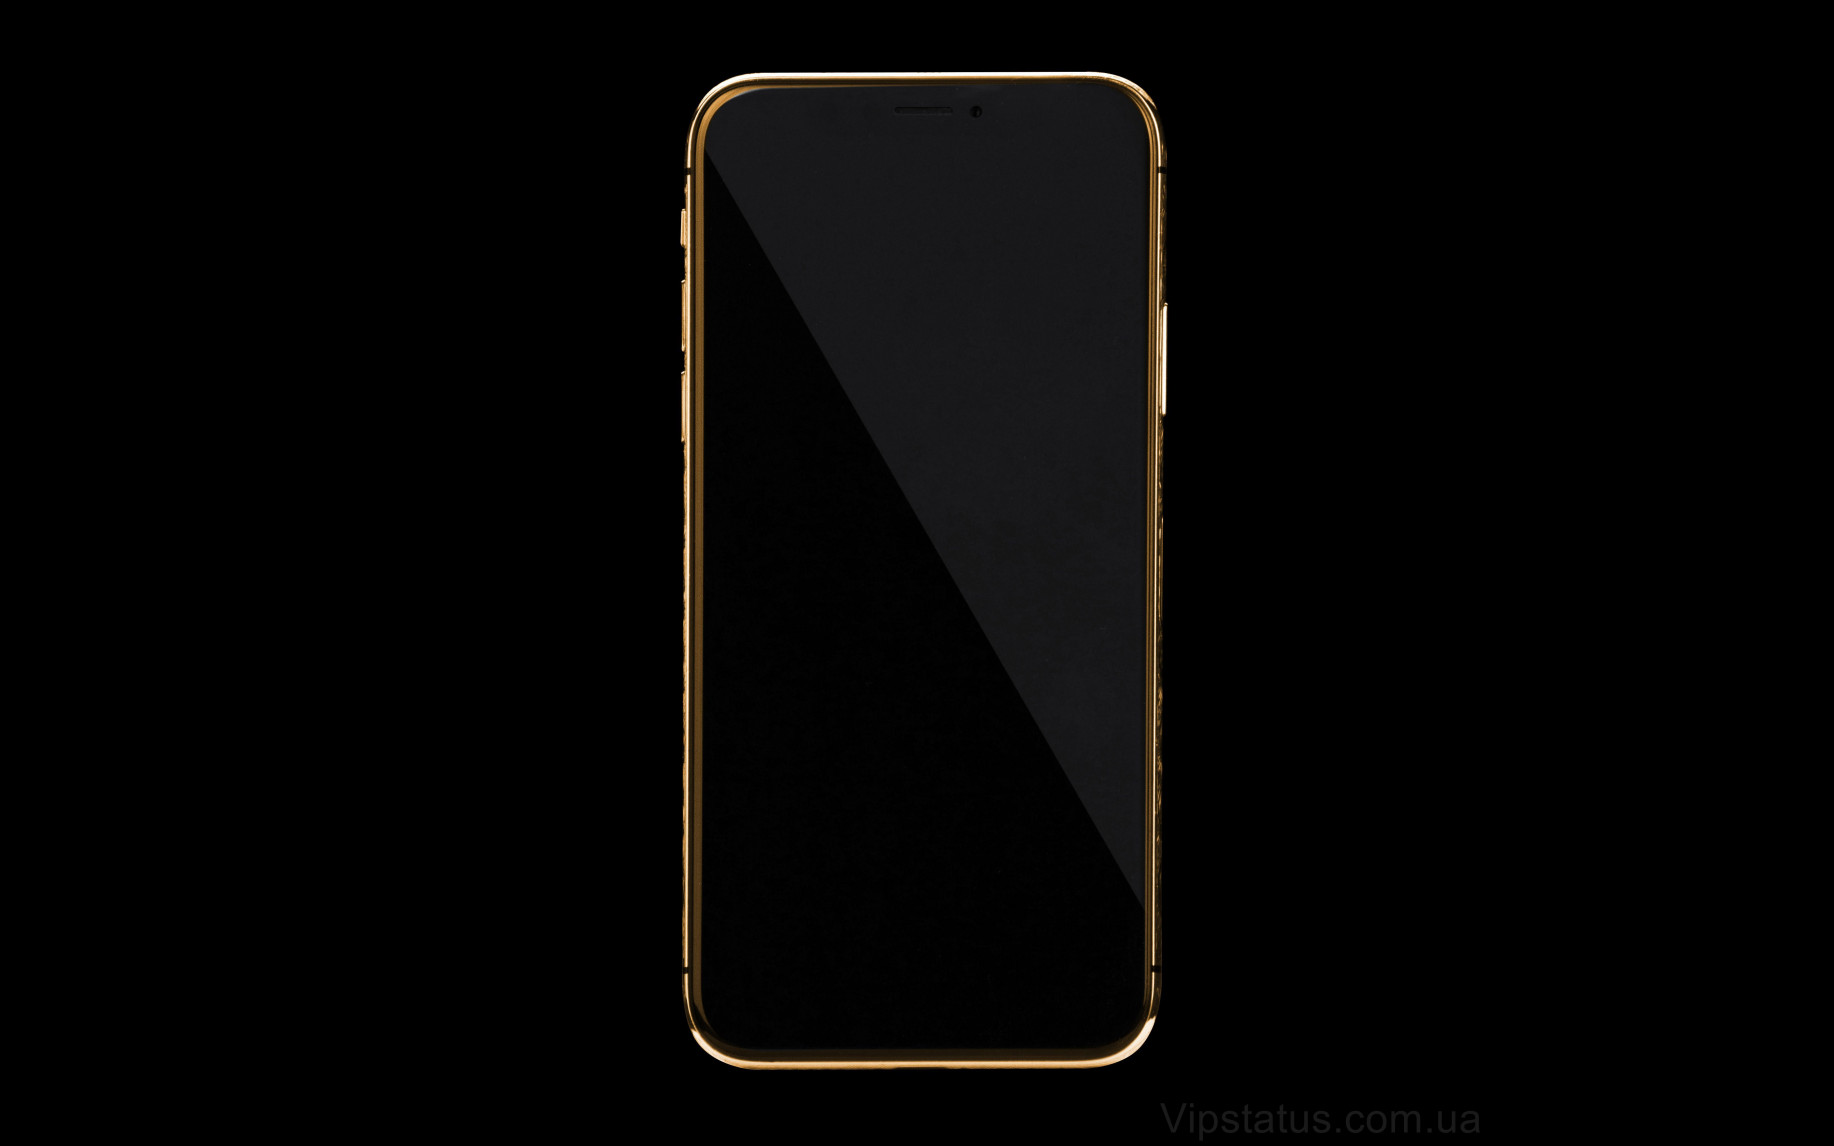 Elite Golden Ring of Time IPHONE 12 PRO MAX 512 GB Golden Ring of Time IPHONE 12 PRO MAX 512 GB image 5